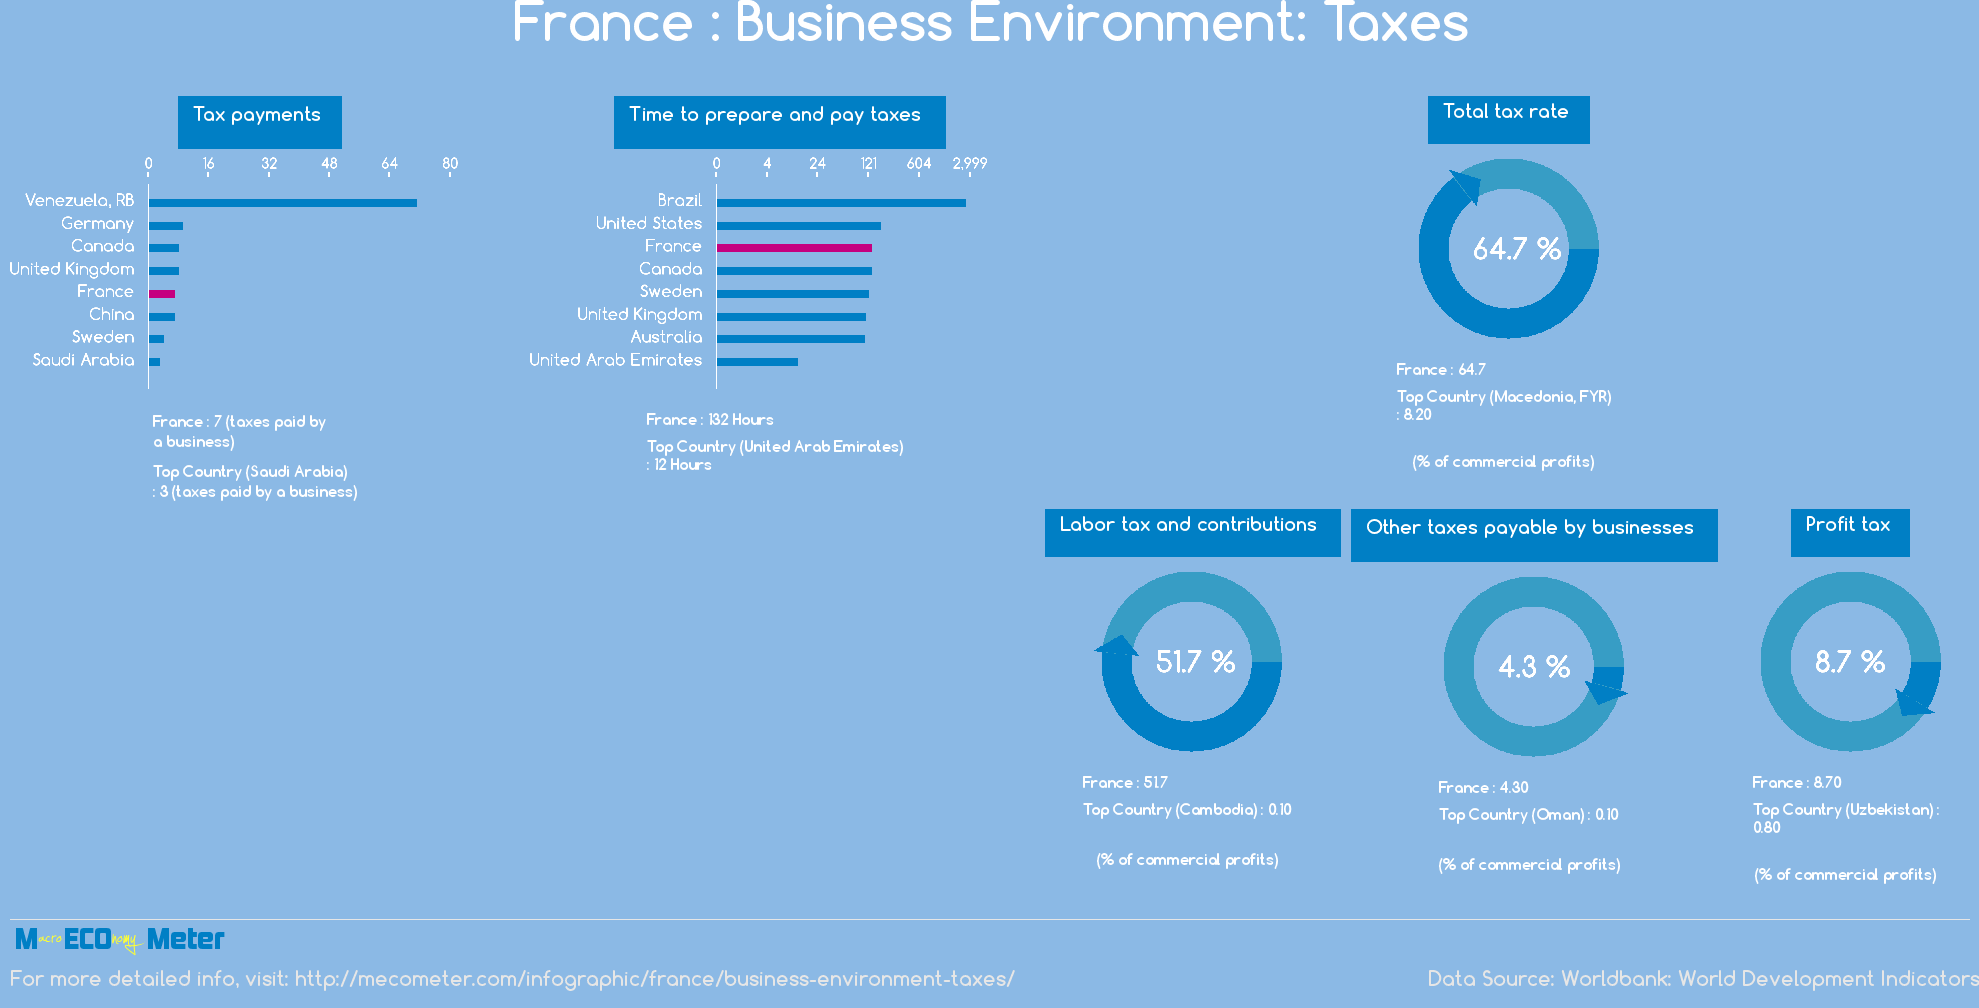 France : Business Environment: Taxes